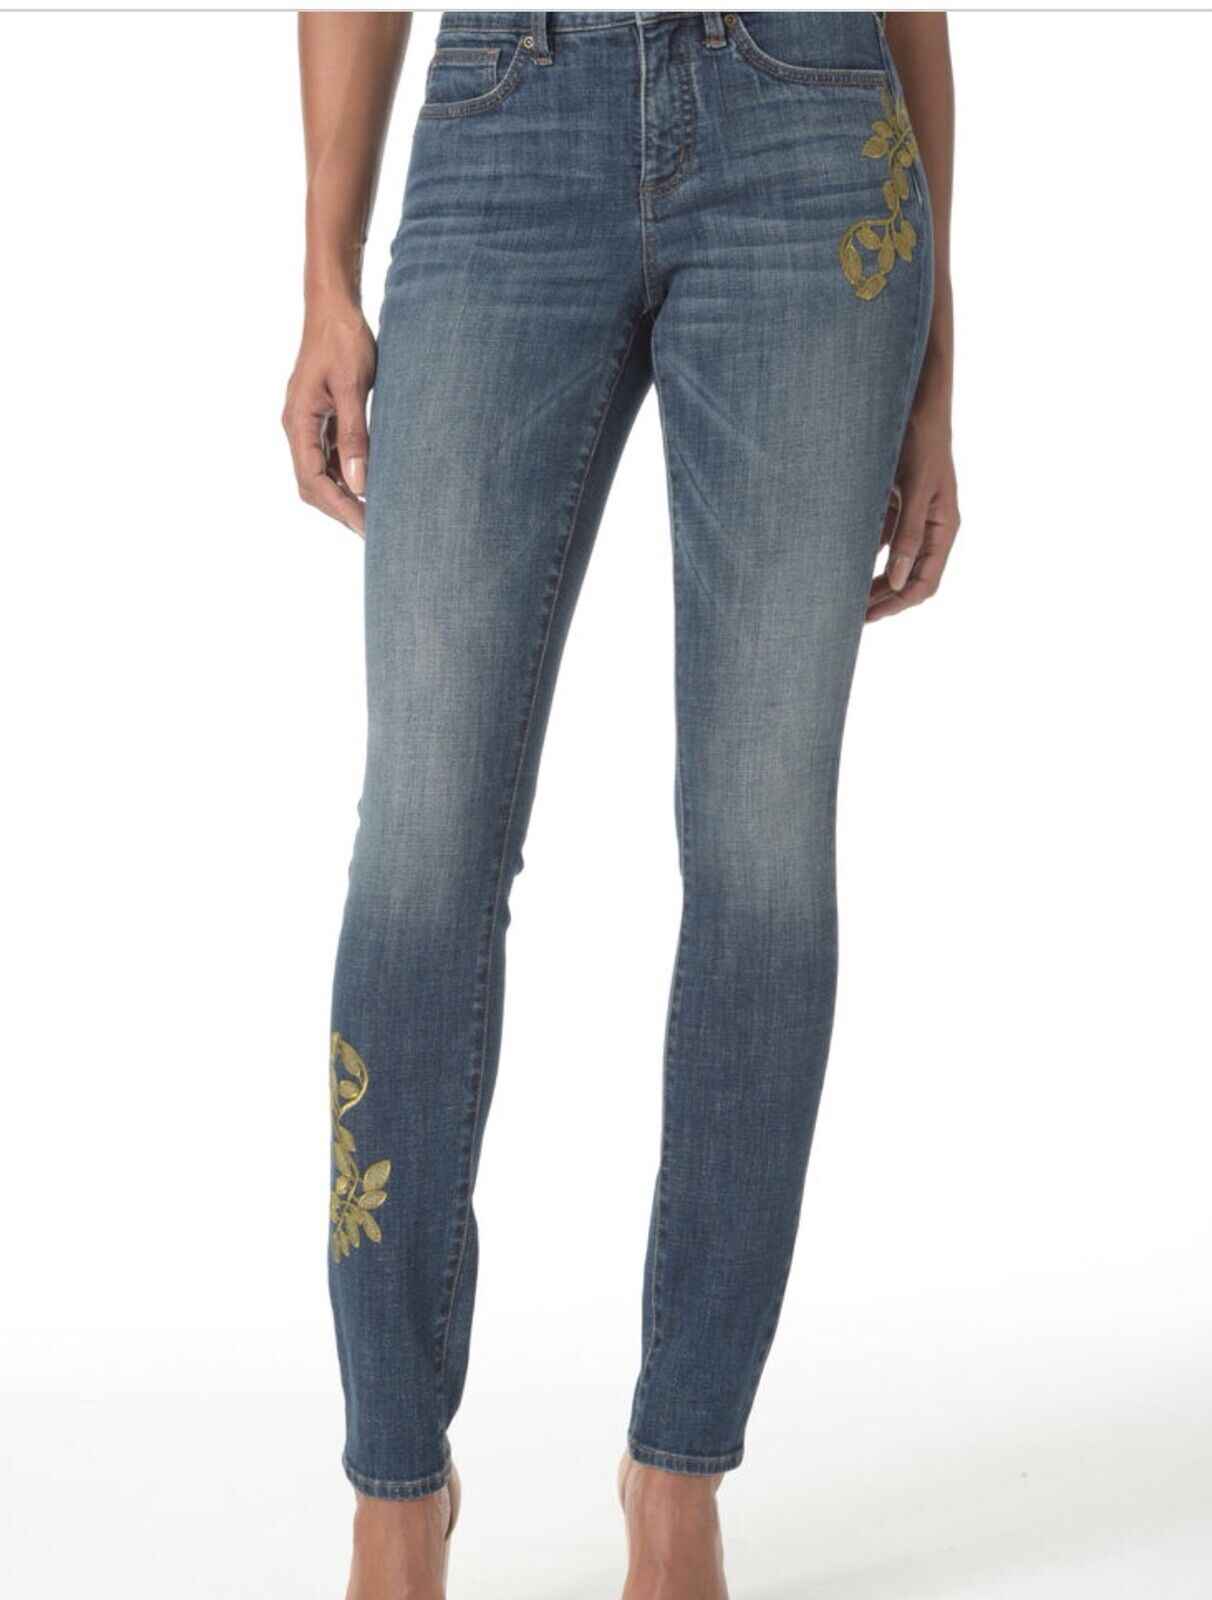 NWT NYDJ Alina Skinny Jeans In Petite With gold Embroidery 10P